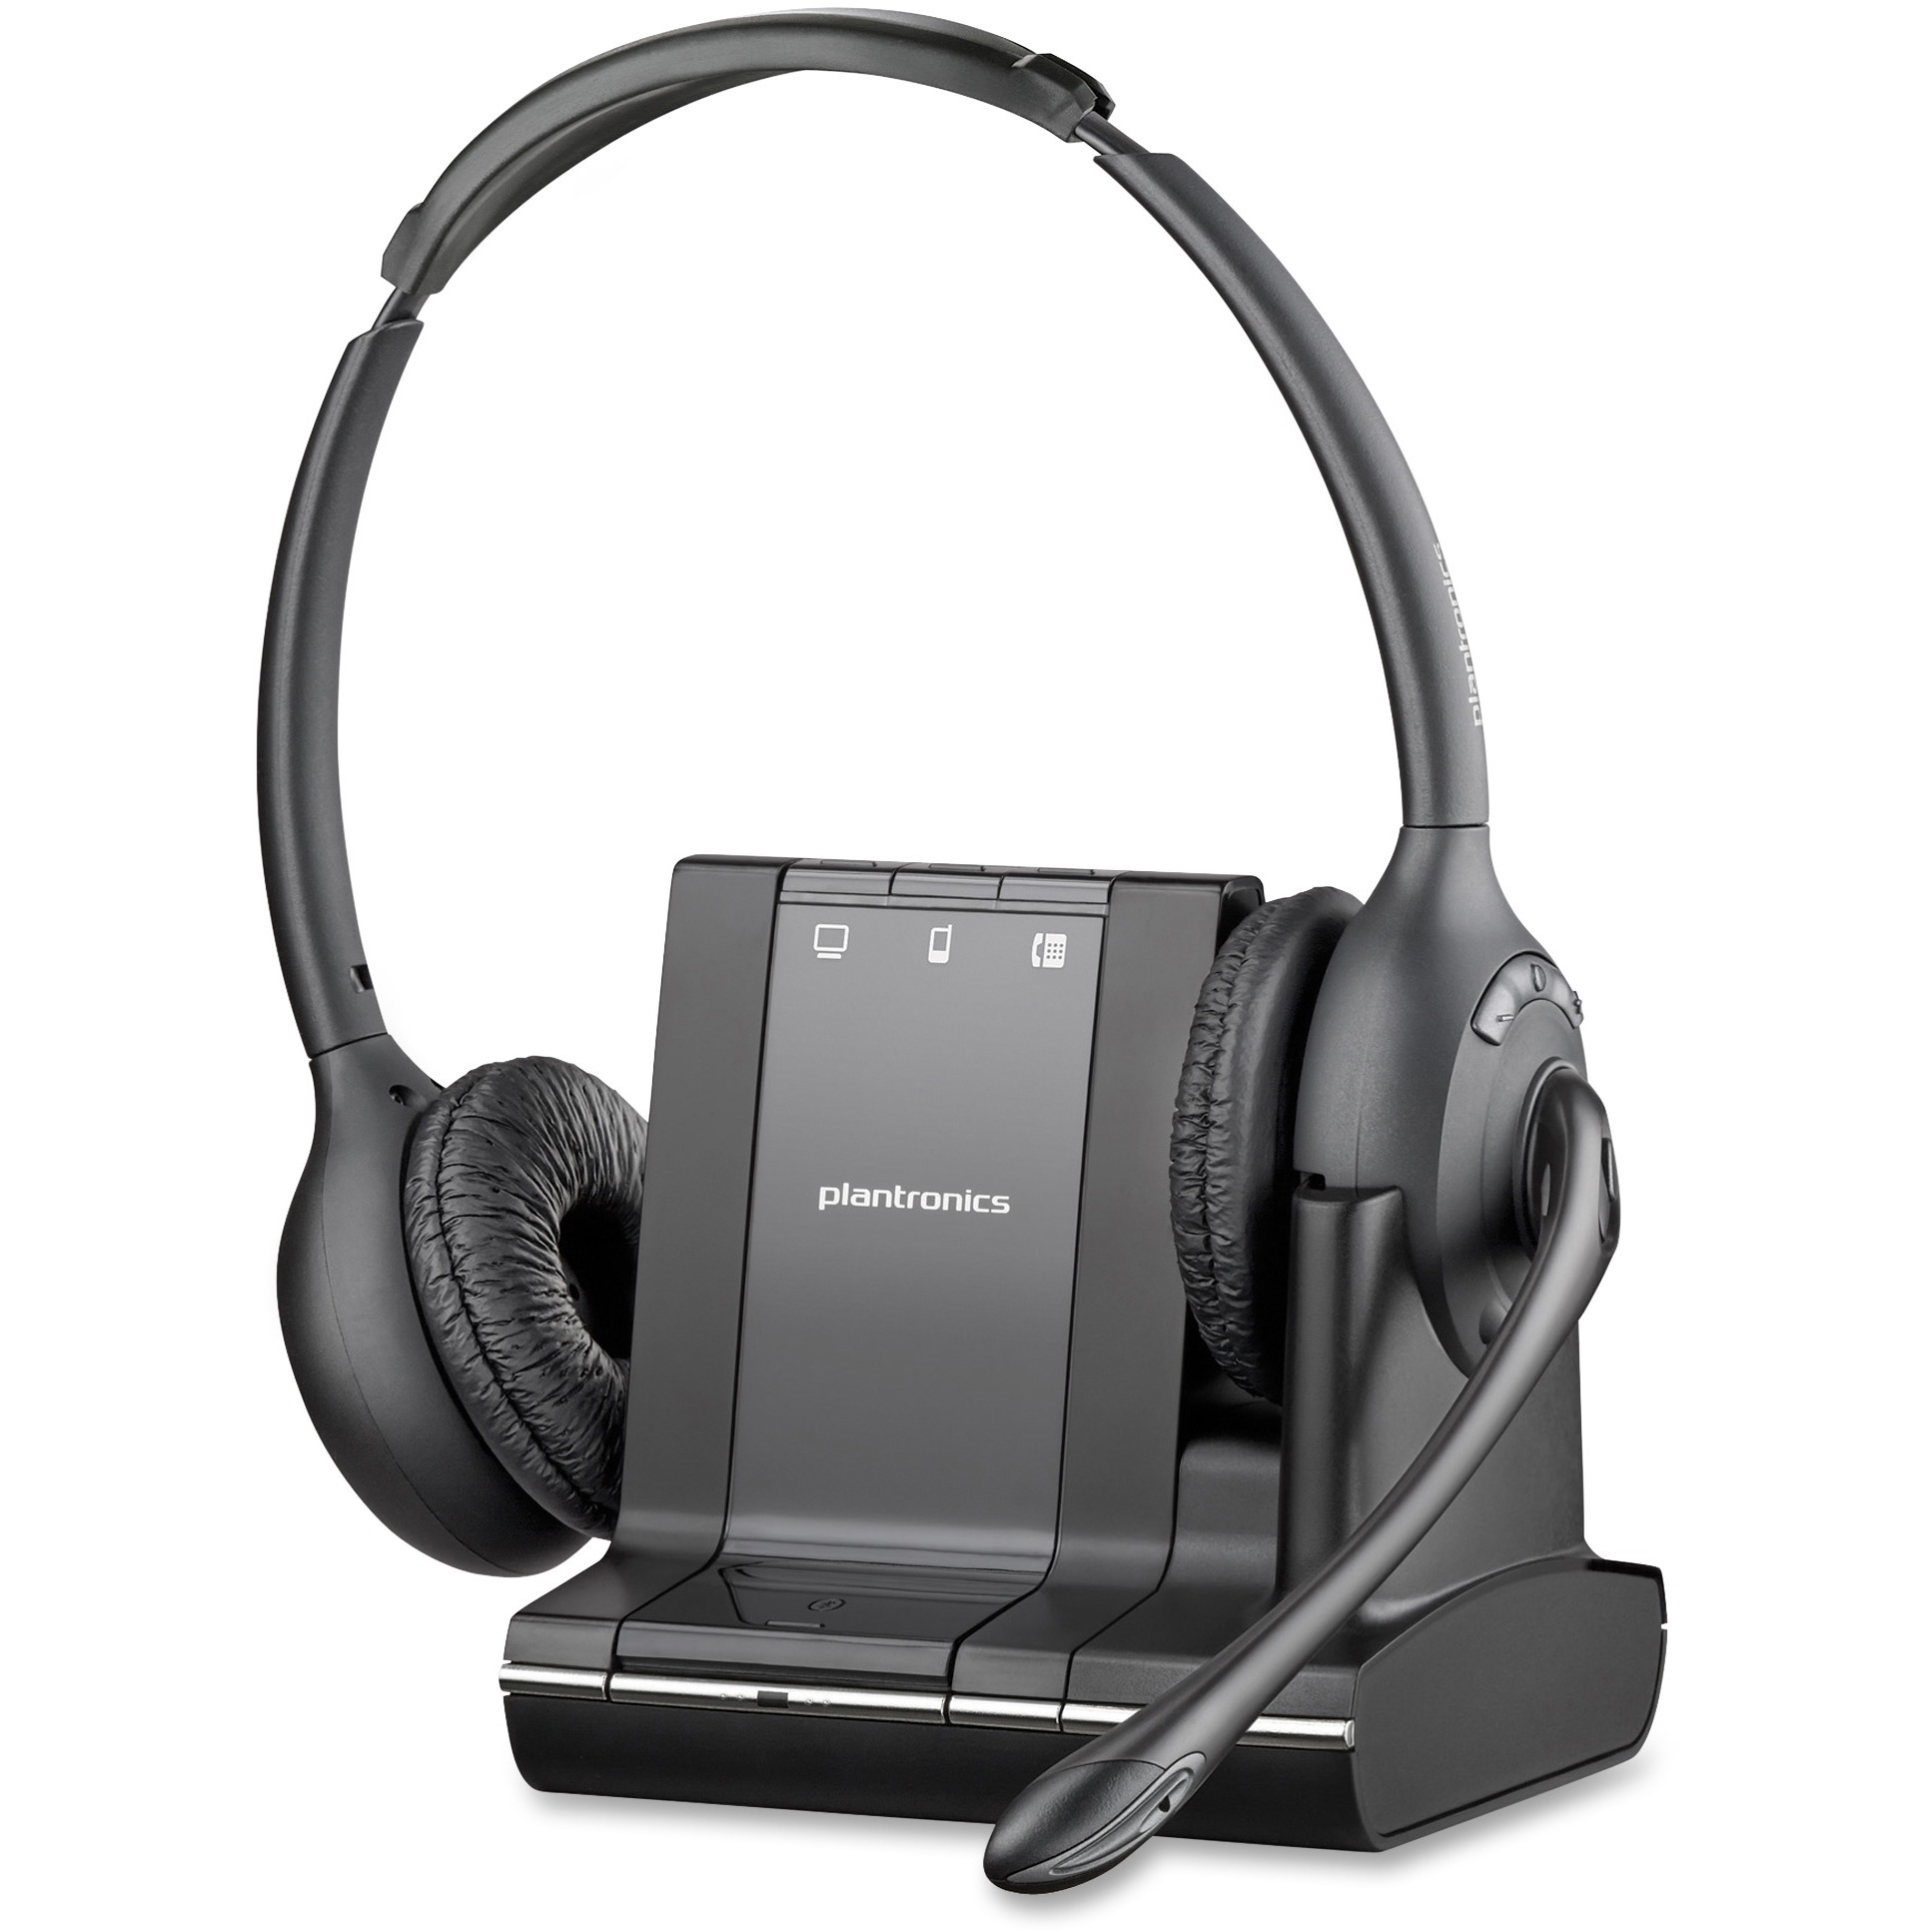 Plantronics, PLNSAVI720, Over-the-Head Monaural Phone Headset, 1, Black